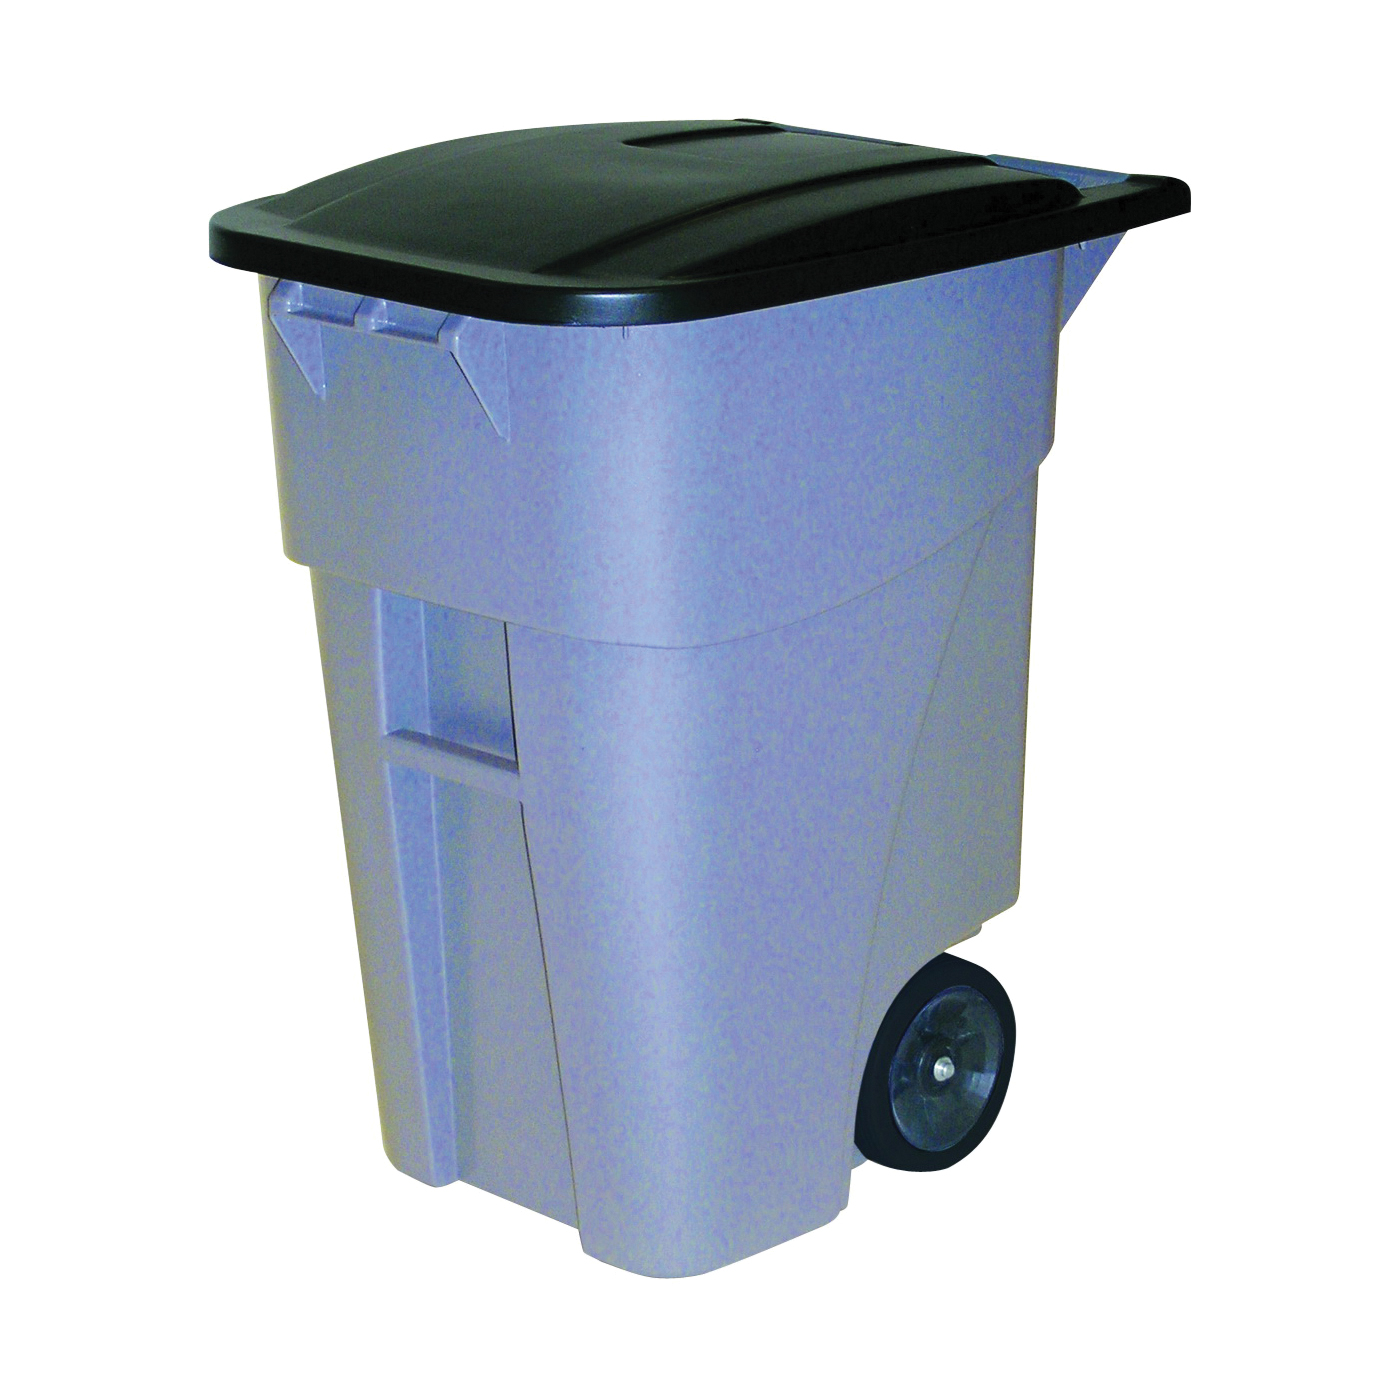 Picture of Rubbermaid FG9W2728GRAY Trash Container, 50 gal Capacity, Polyethylene, Gray, Hinged Lid Closure